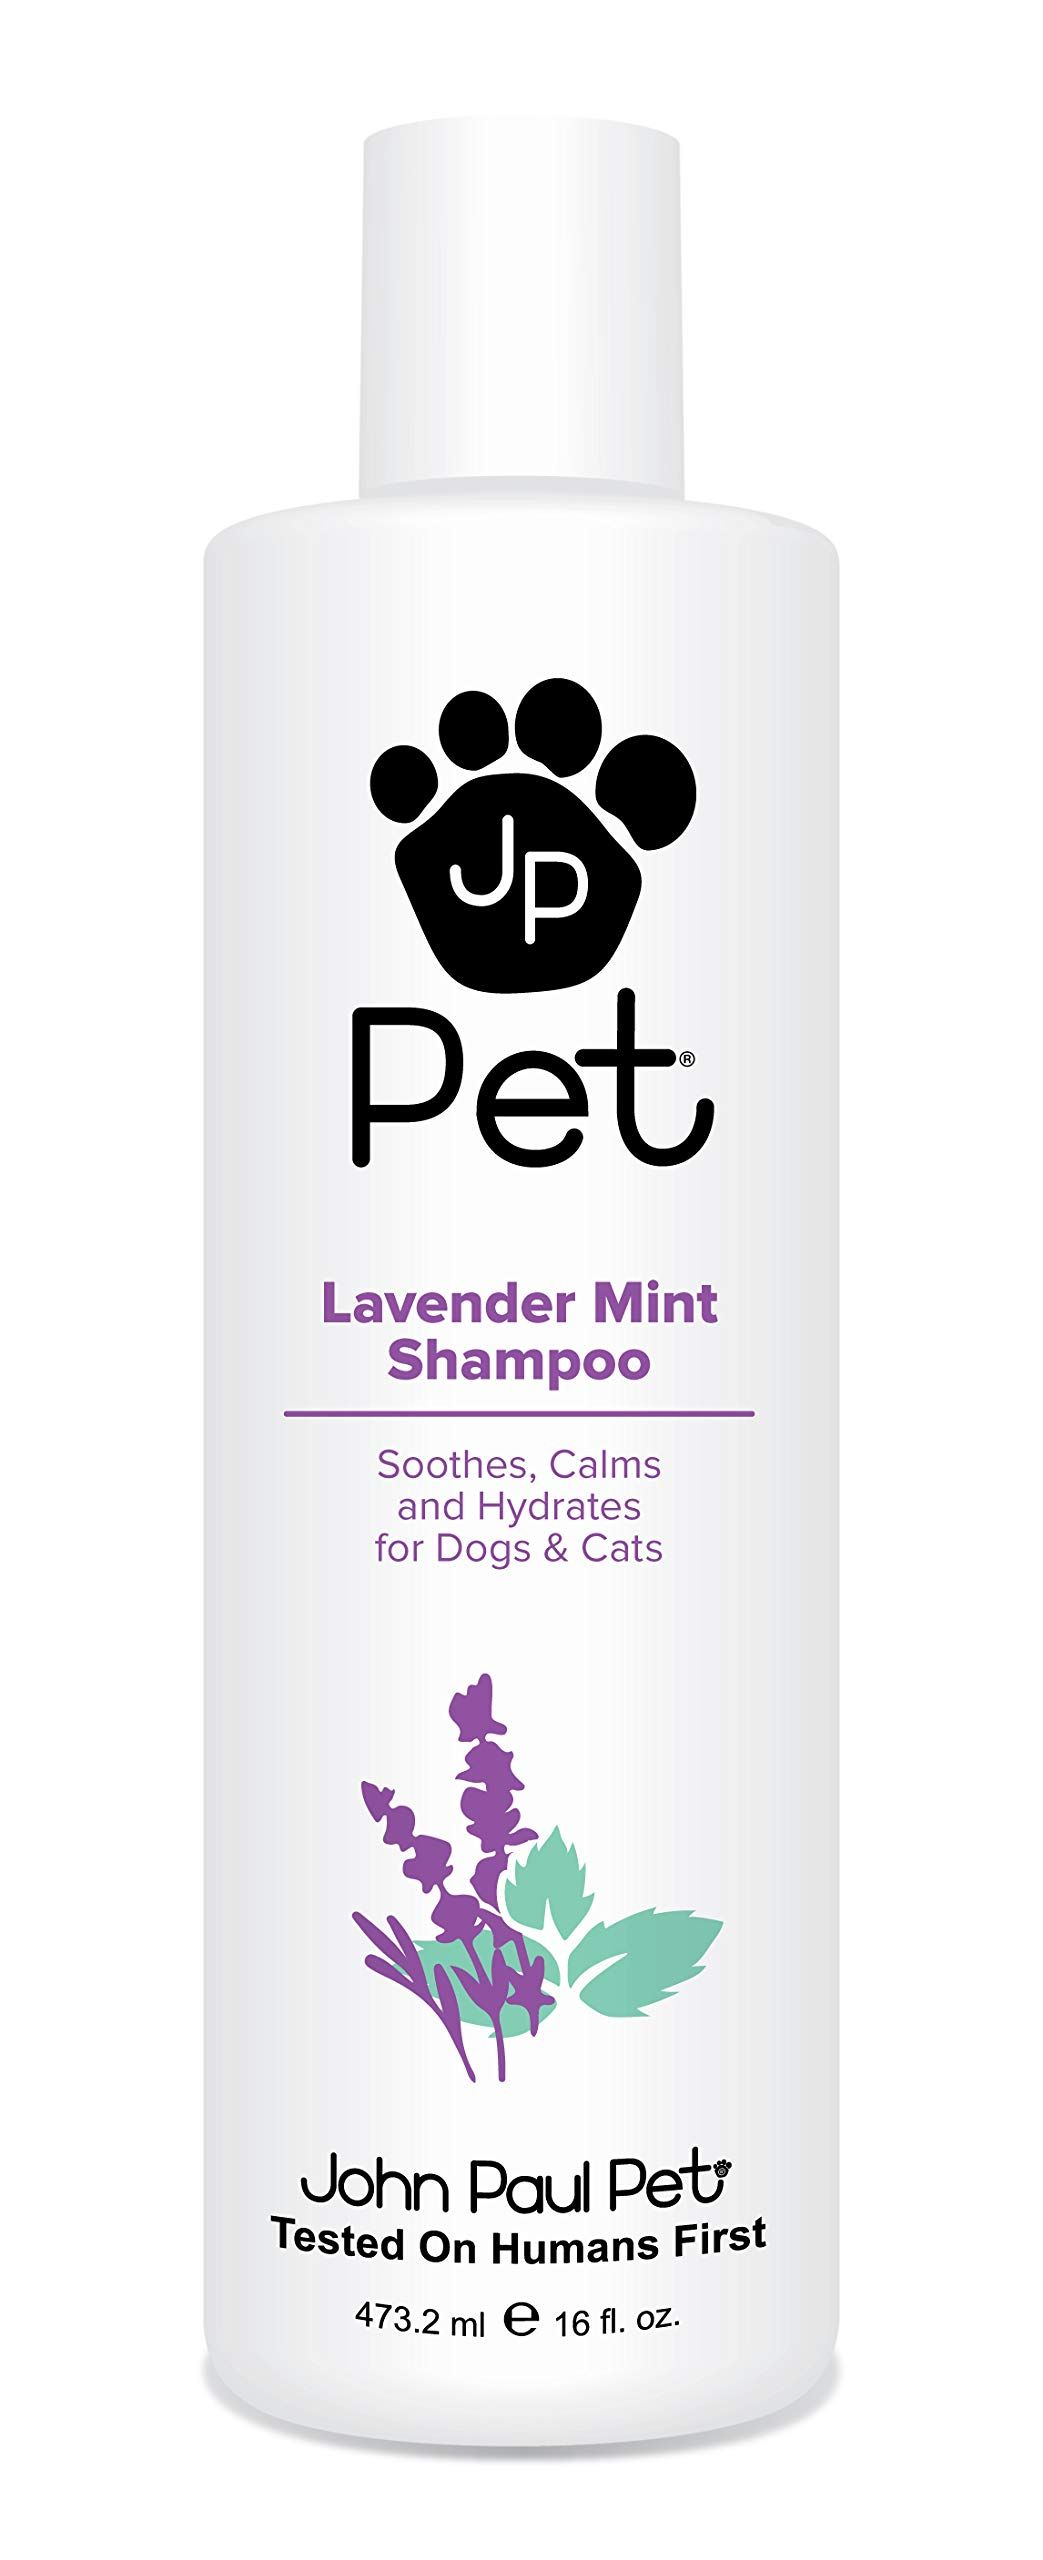 John Paul Pet Lavender Mint Shampoo For Dogs And Cats Soothes Calms And Hydrates 16ounce You Can Find Out More Details At T Mint Shampoo Oil Shampoo Shampoo